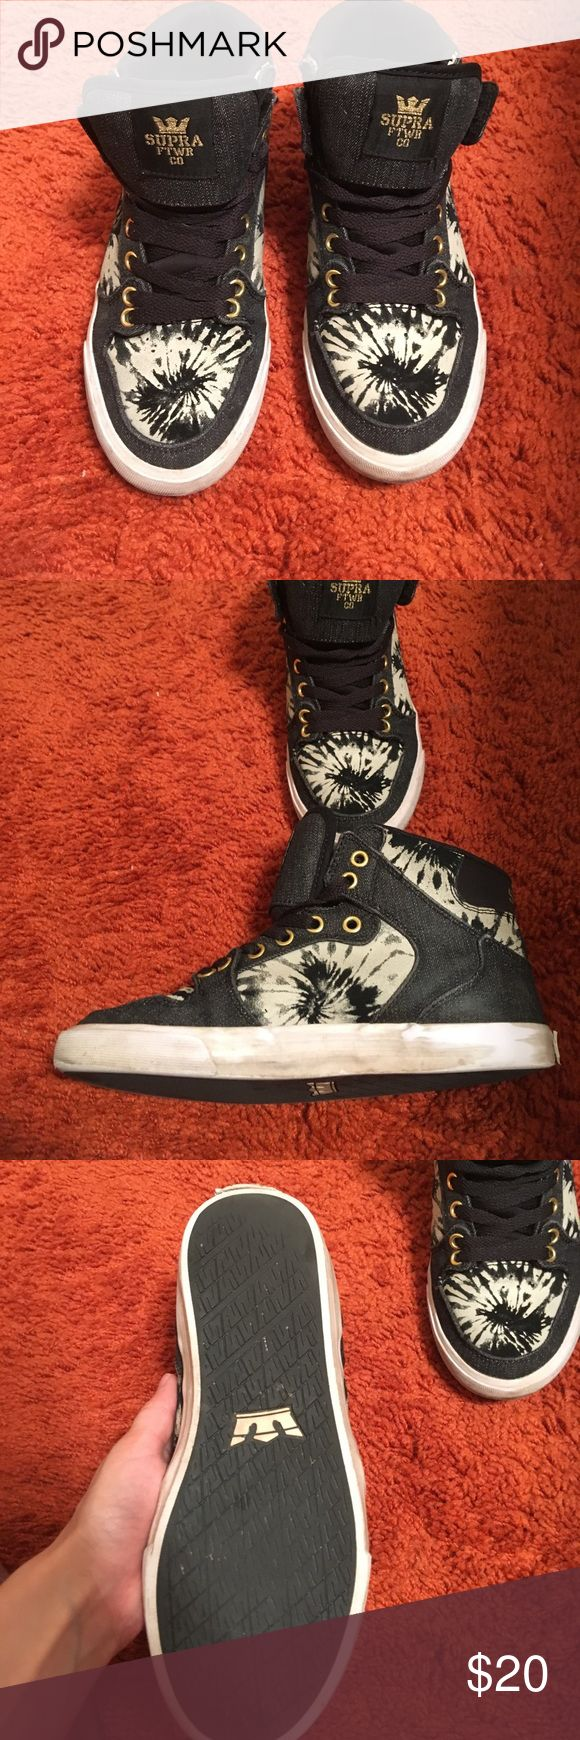 Supra high tops Decent condition however the back label is coming off. Supra Shoes Sneakers